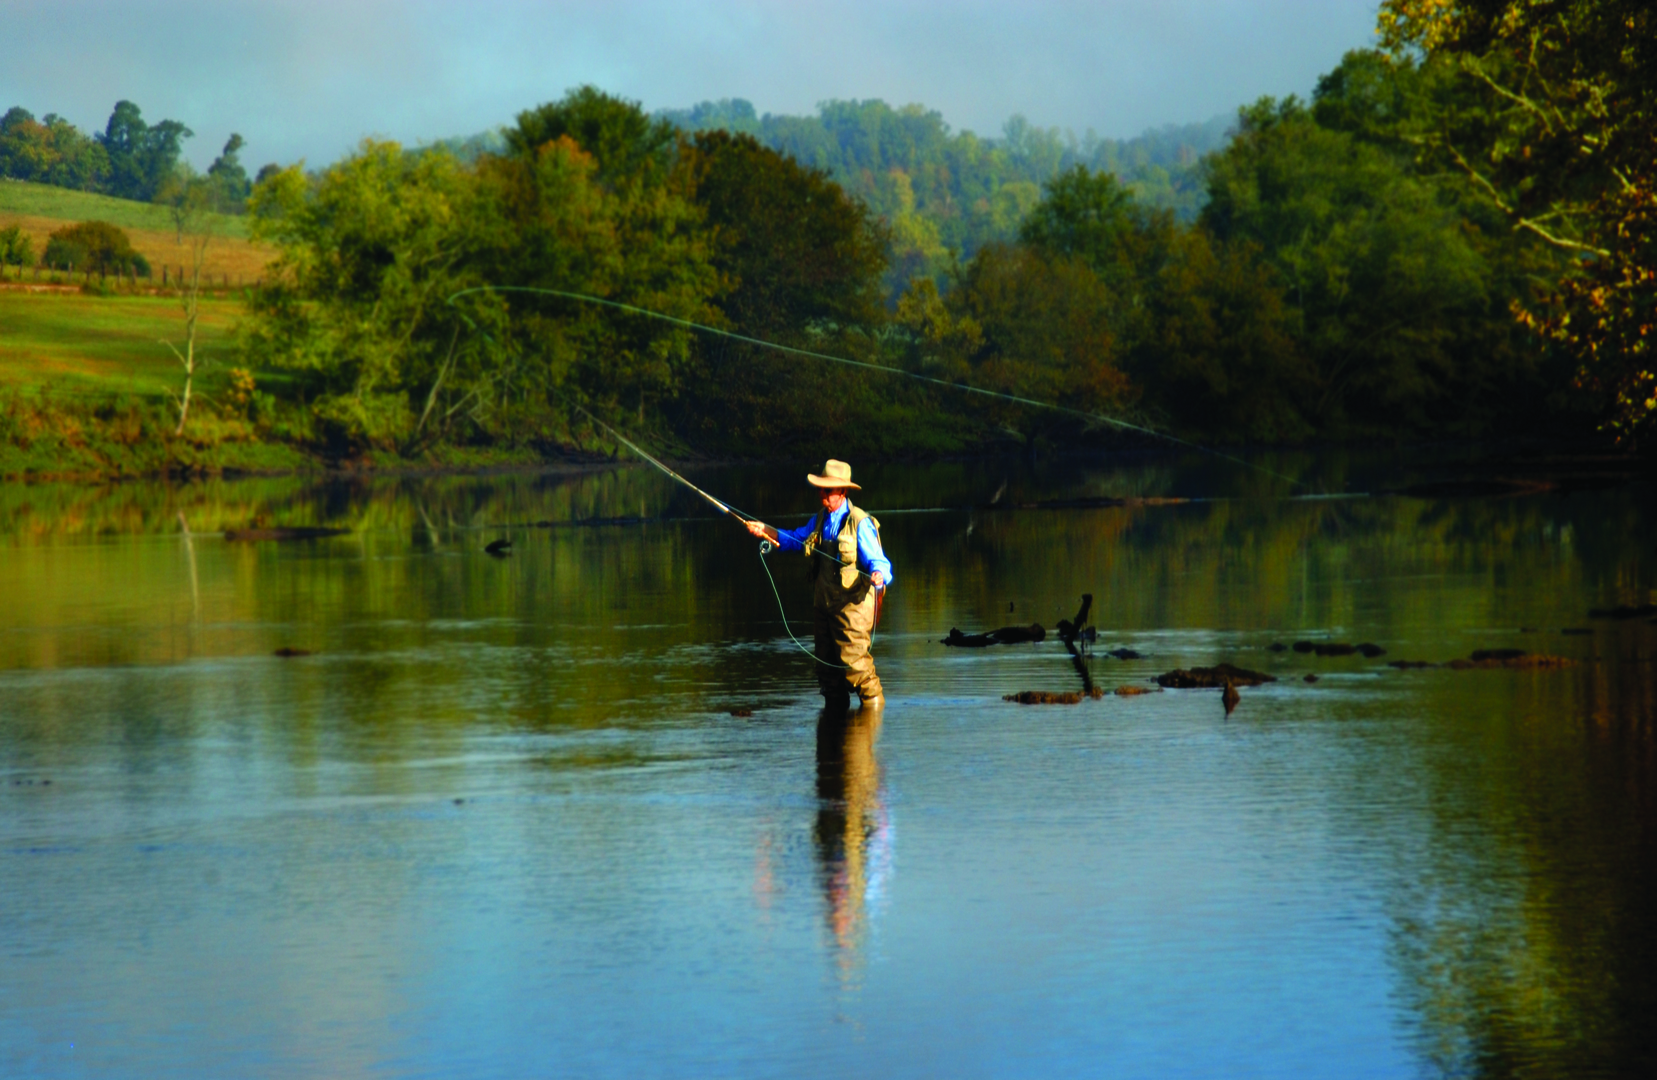 Fishing on Clinch River